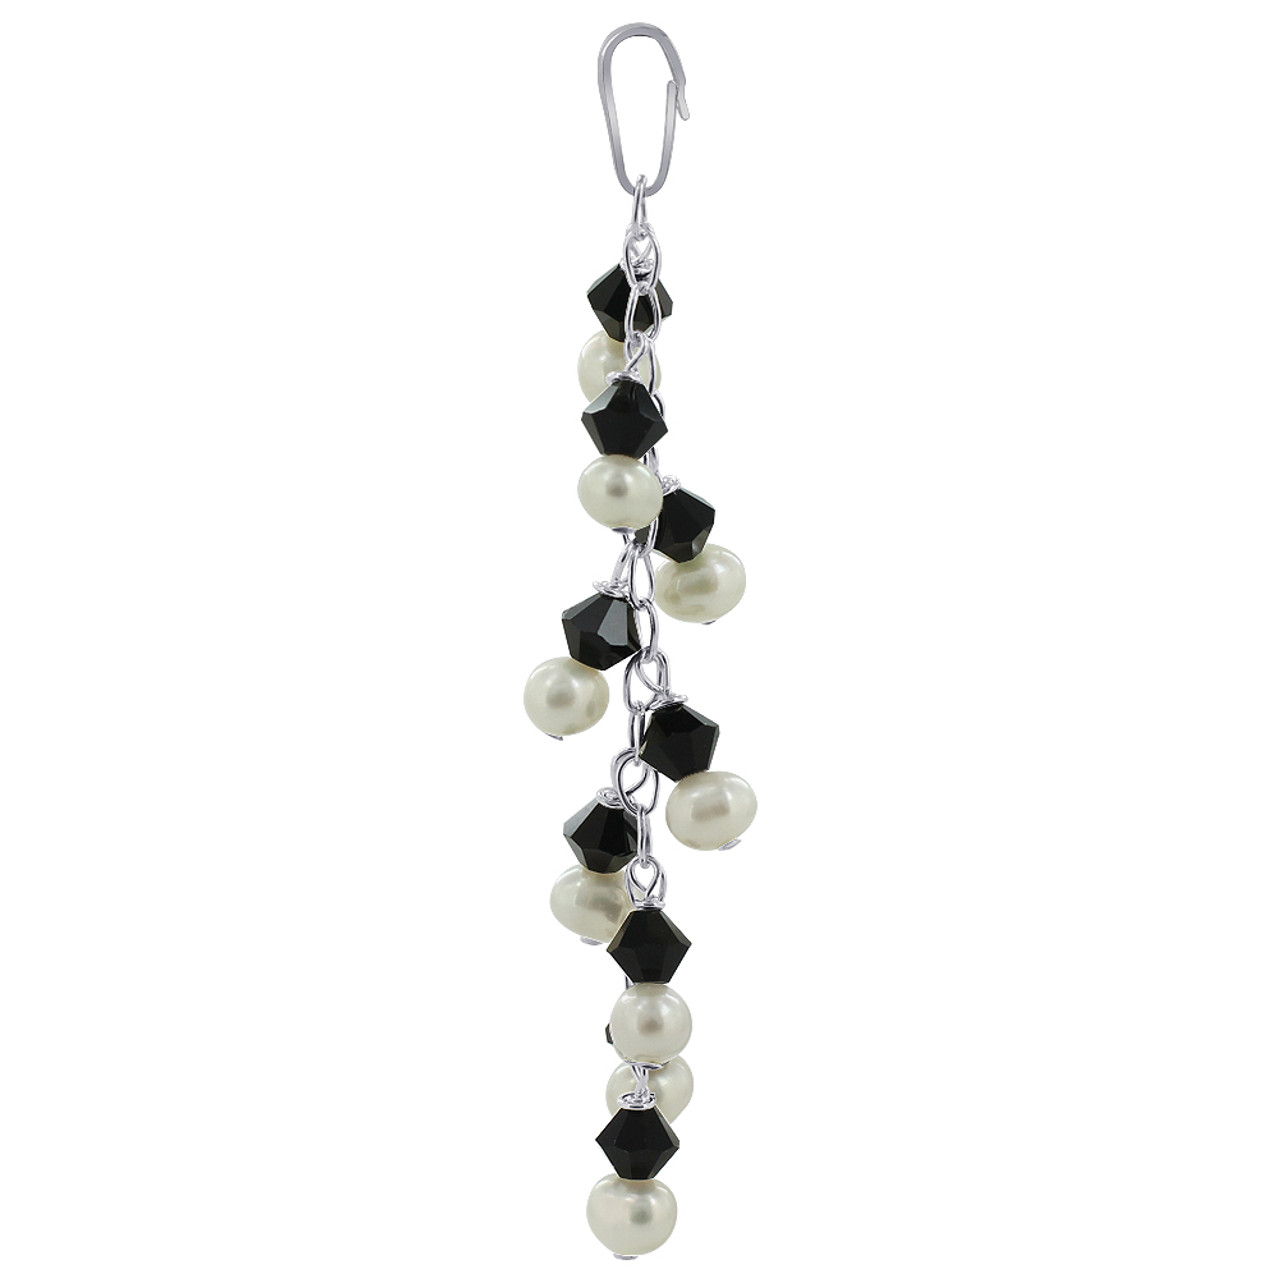 White Freshwater Pearls with Black Bicone Sterling Silver Pendant